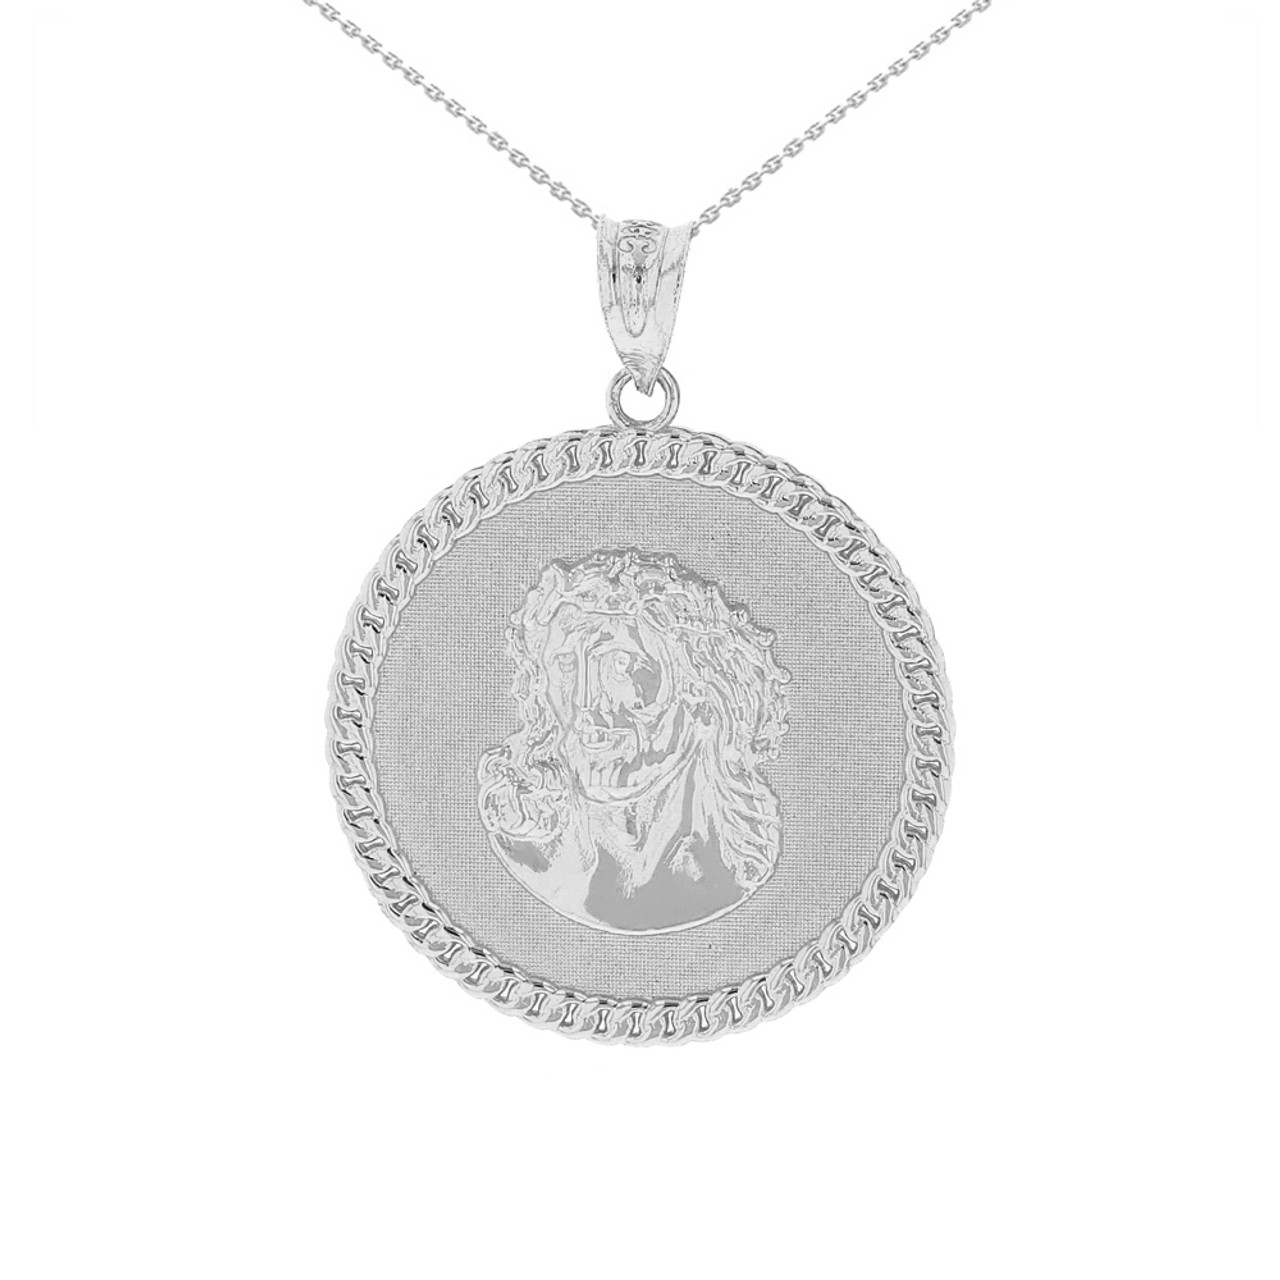 Solid white gold cuban curb link frame circle jesus christ medallion solid white gold cuban curb link frame circle jesus christ medallion pendant necklace aloadofball Images